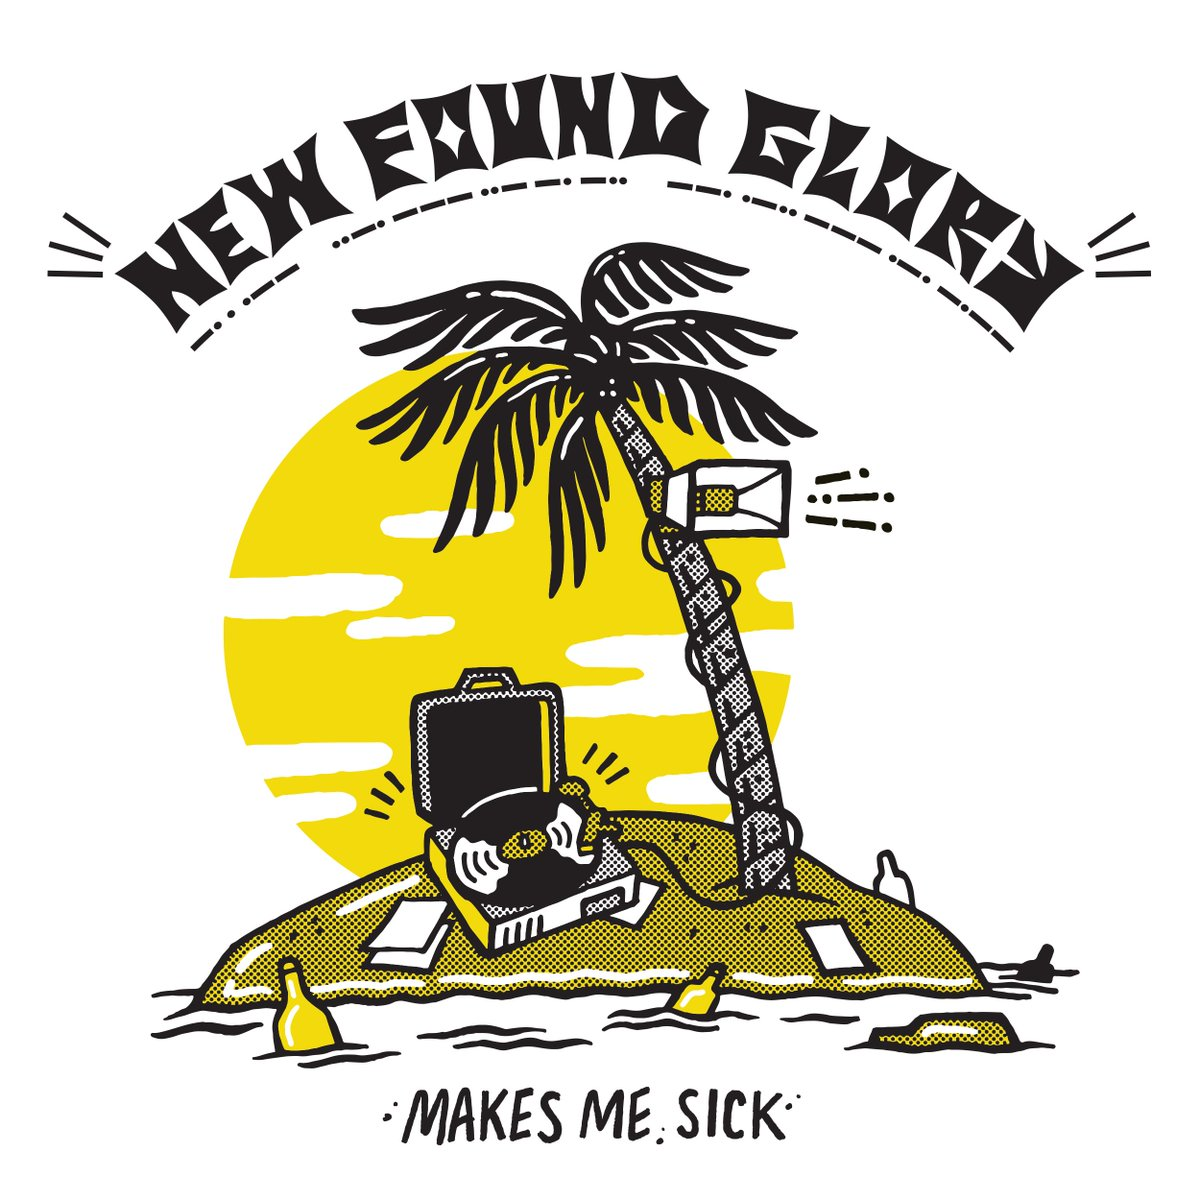 """NEW FOUND GLORY 'MAKES ME SICK'! NEW ALBUM AVAILABLE APRIL 28! FIRST SINGLE """"HAPPY BEING MISERABLE"""" OUT FEBRUARY 16! https://t.co/5ut7ZRipBa"""